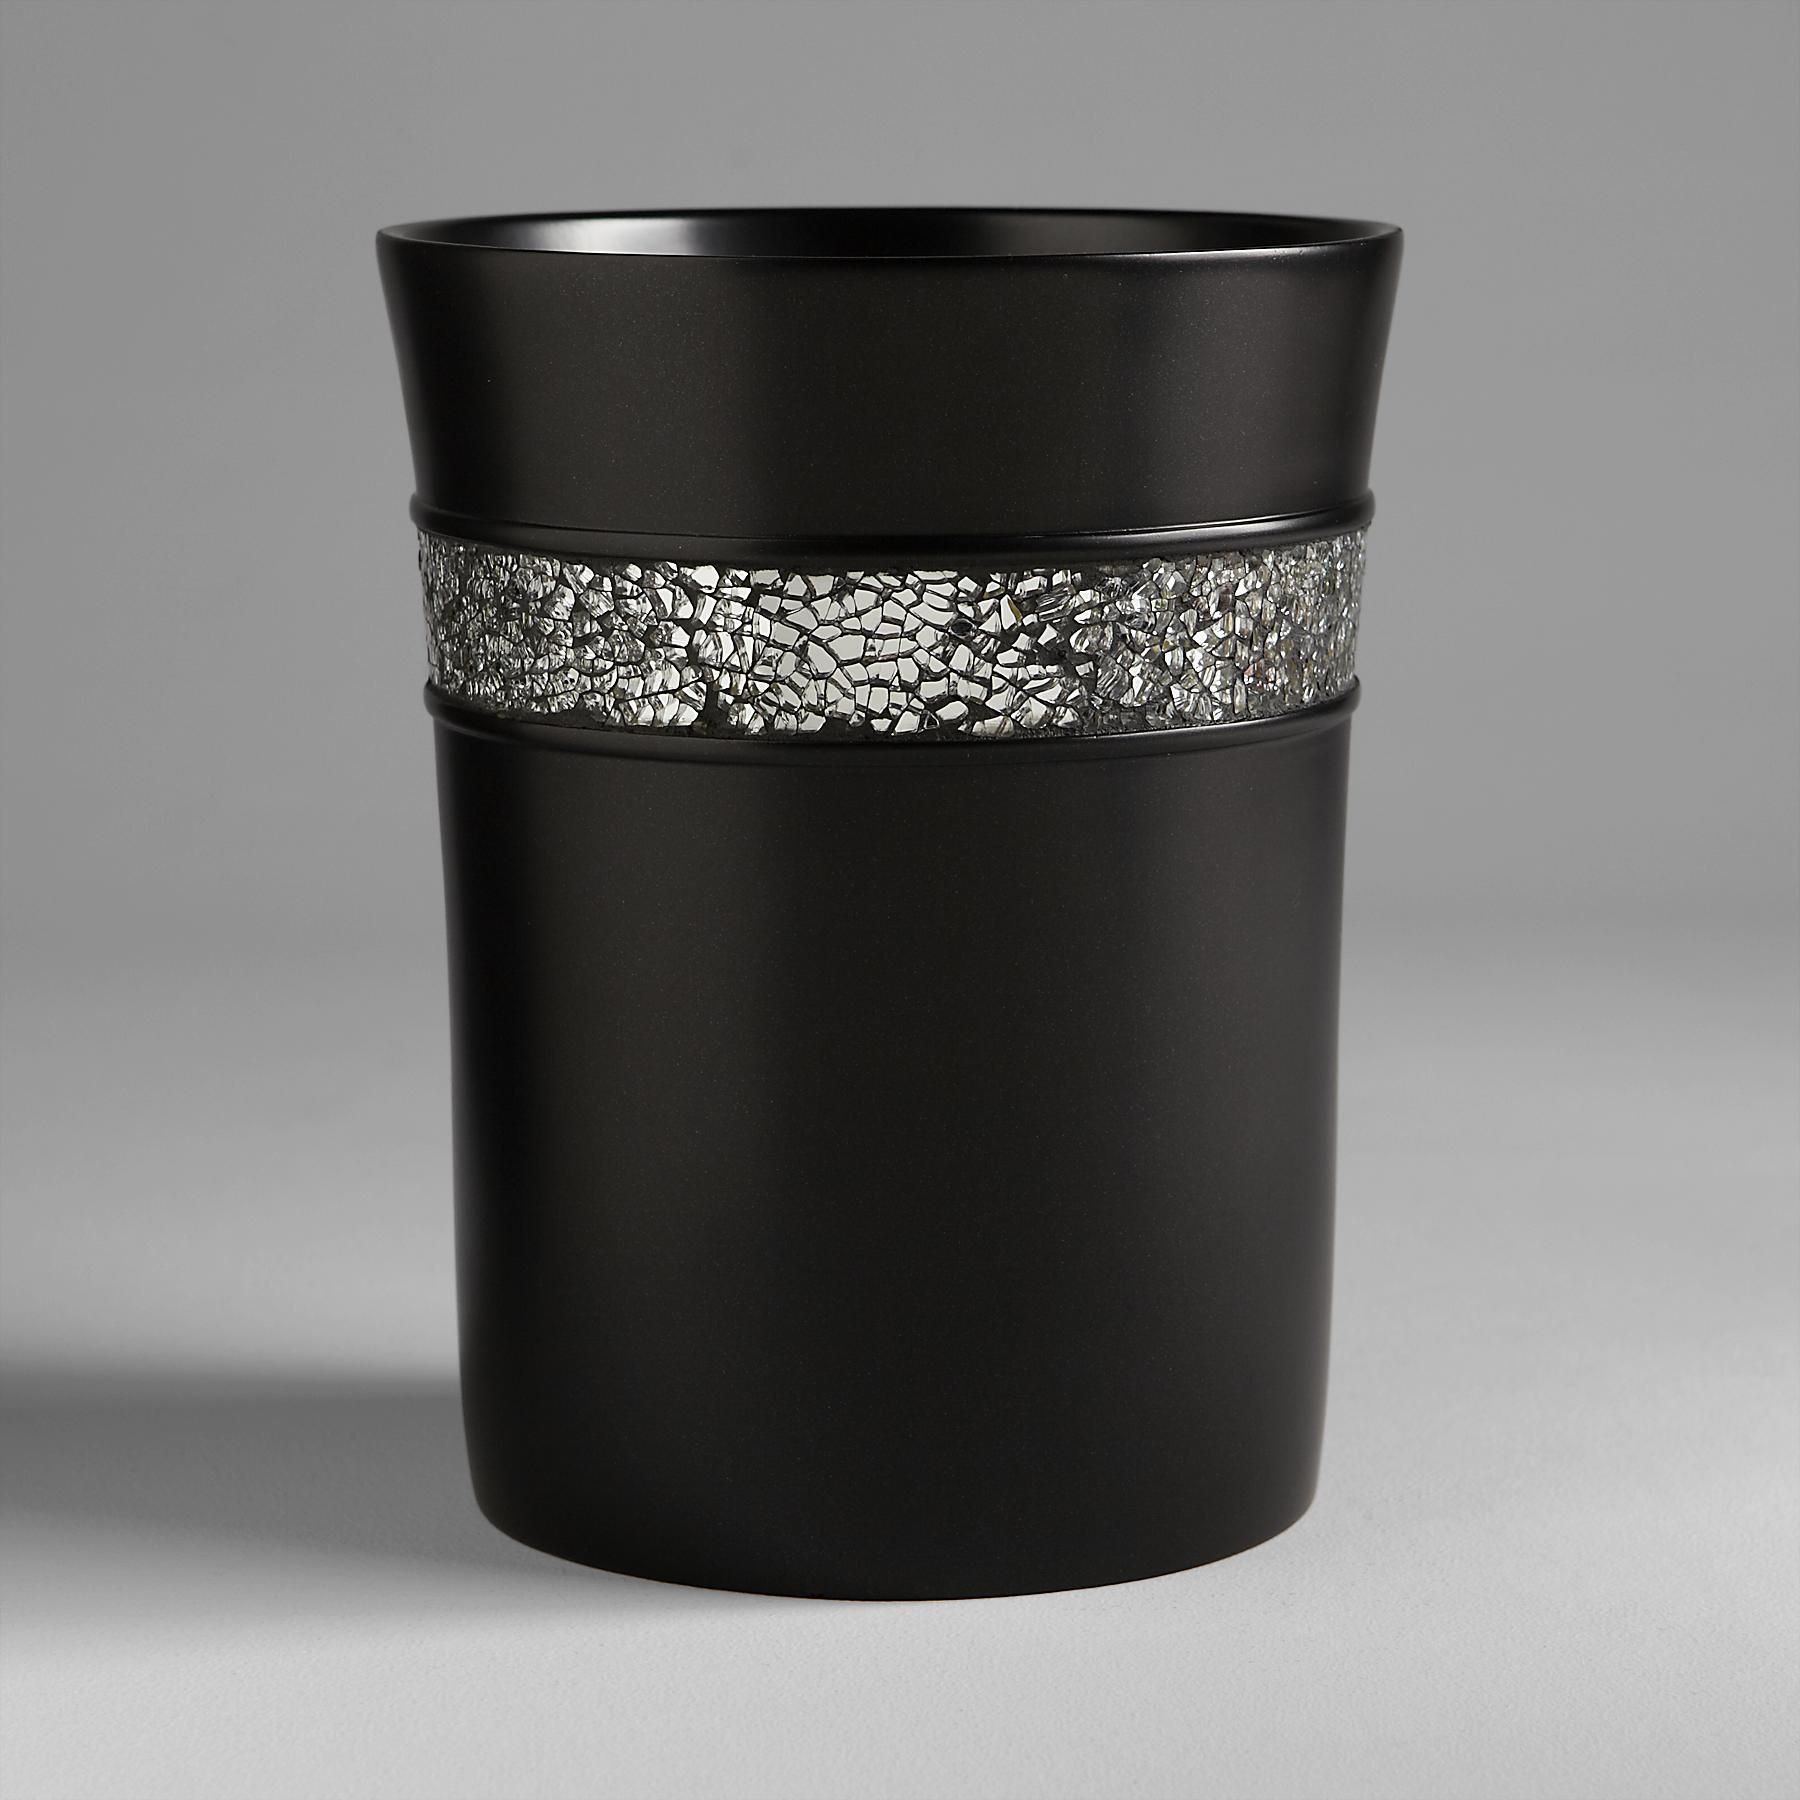 Black Bathroom Wastebasket Sofia By Sofia Vergara Black Magic Waste Basket